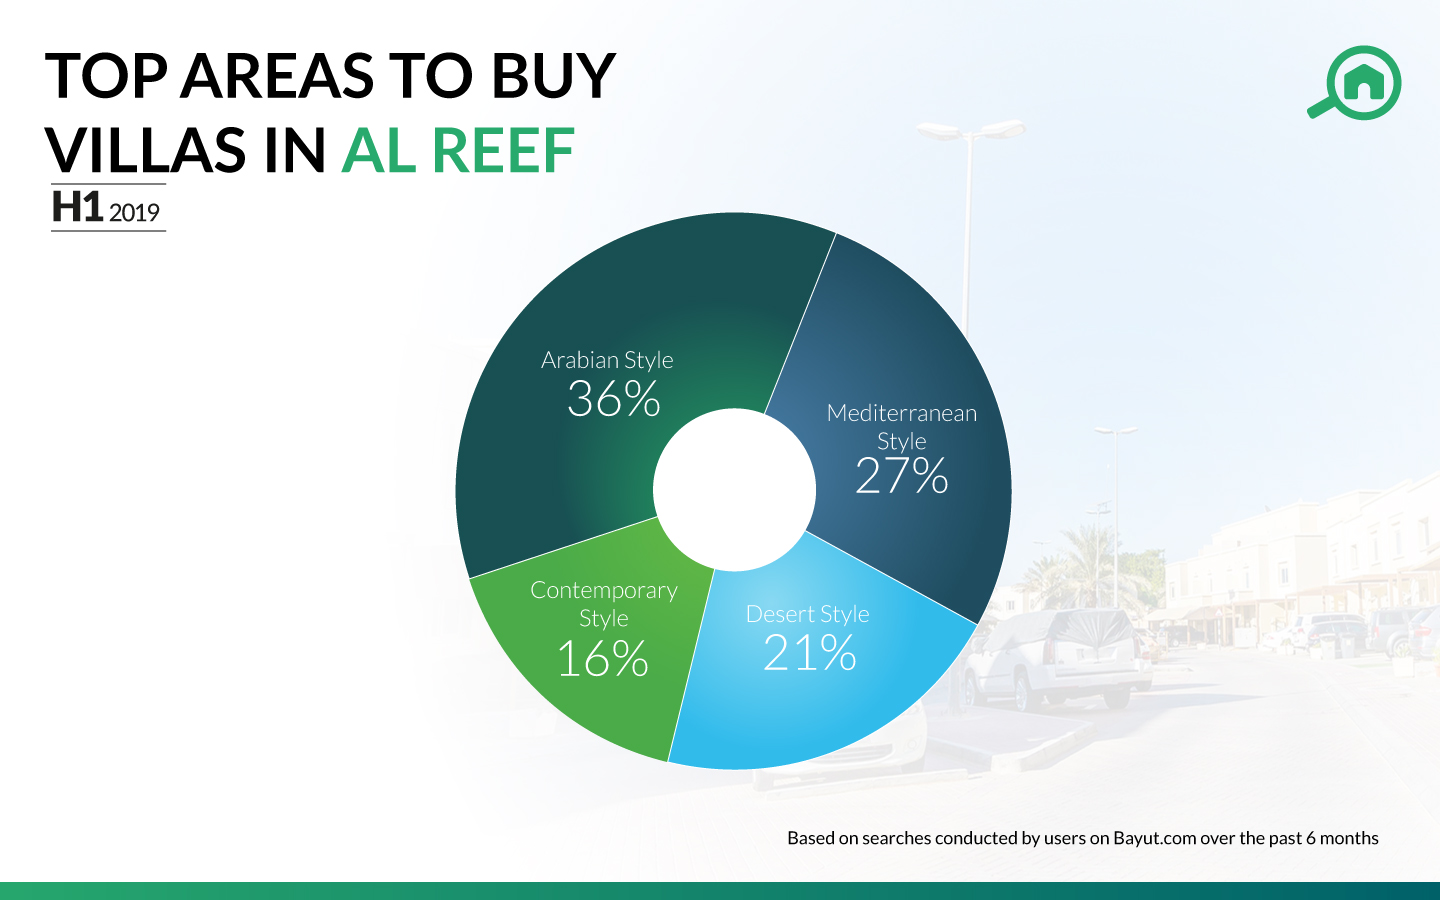 Pie chart showing the most popular sub-communities with villas for sale in Al Reef